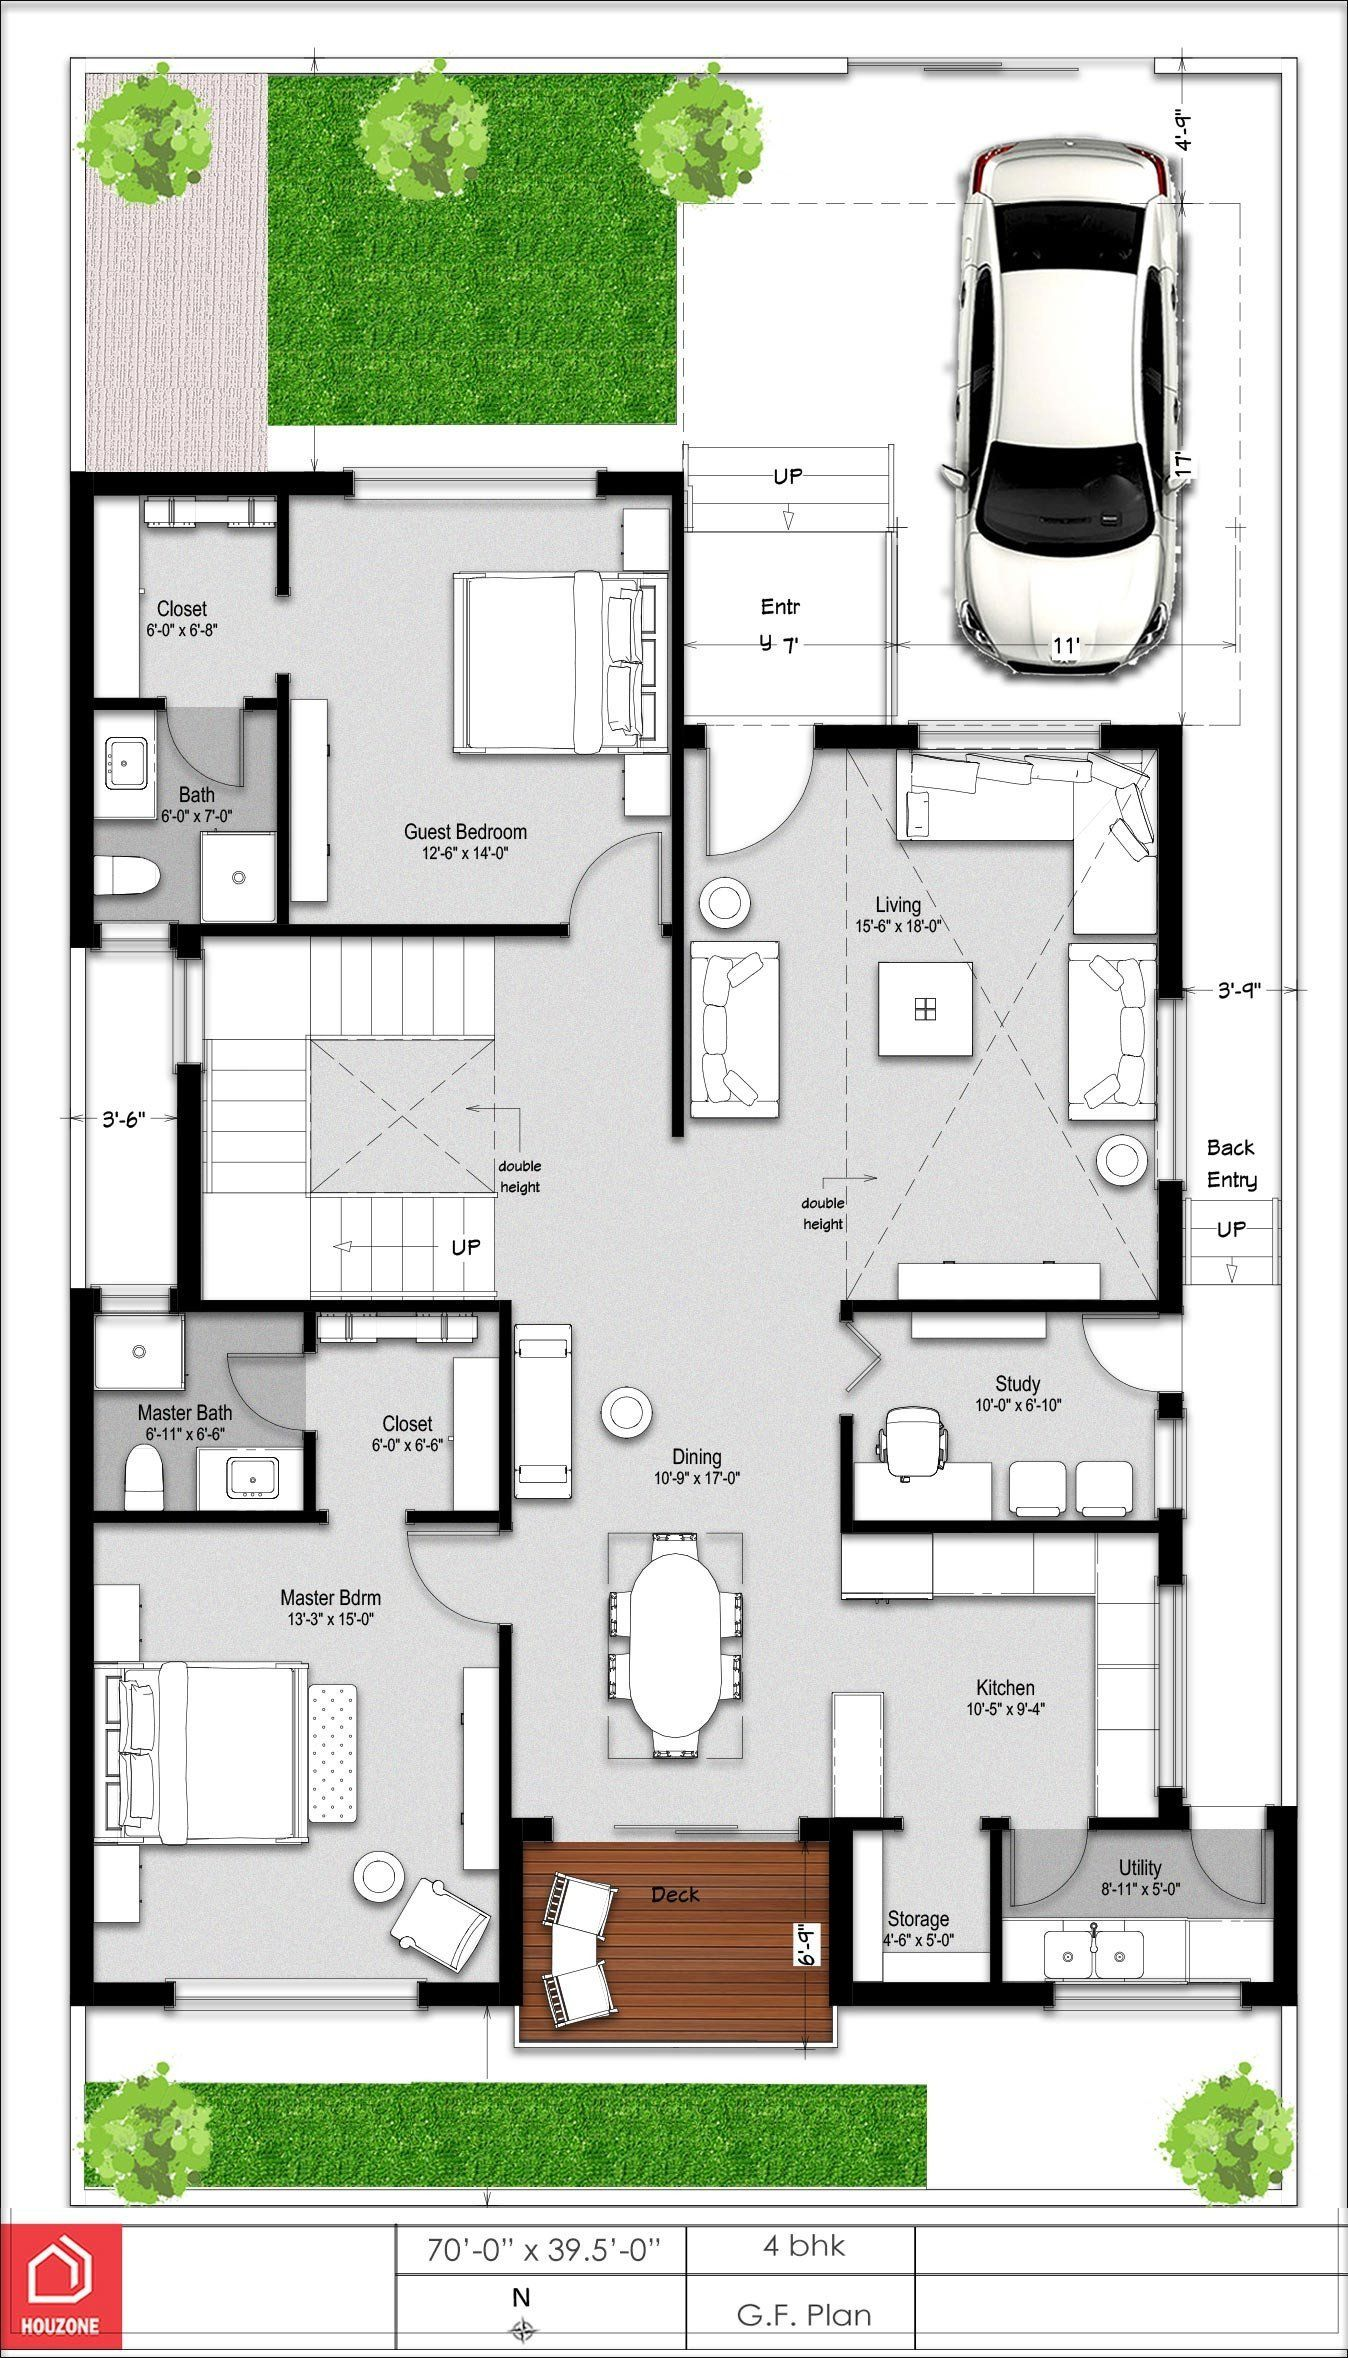 Modern House Floor Plan India A Beautiful 4 Bedroom Duplex House On A 300 Sq Yards Plot Duplex House Plans Duplex House Design Bungalow House Design